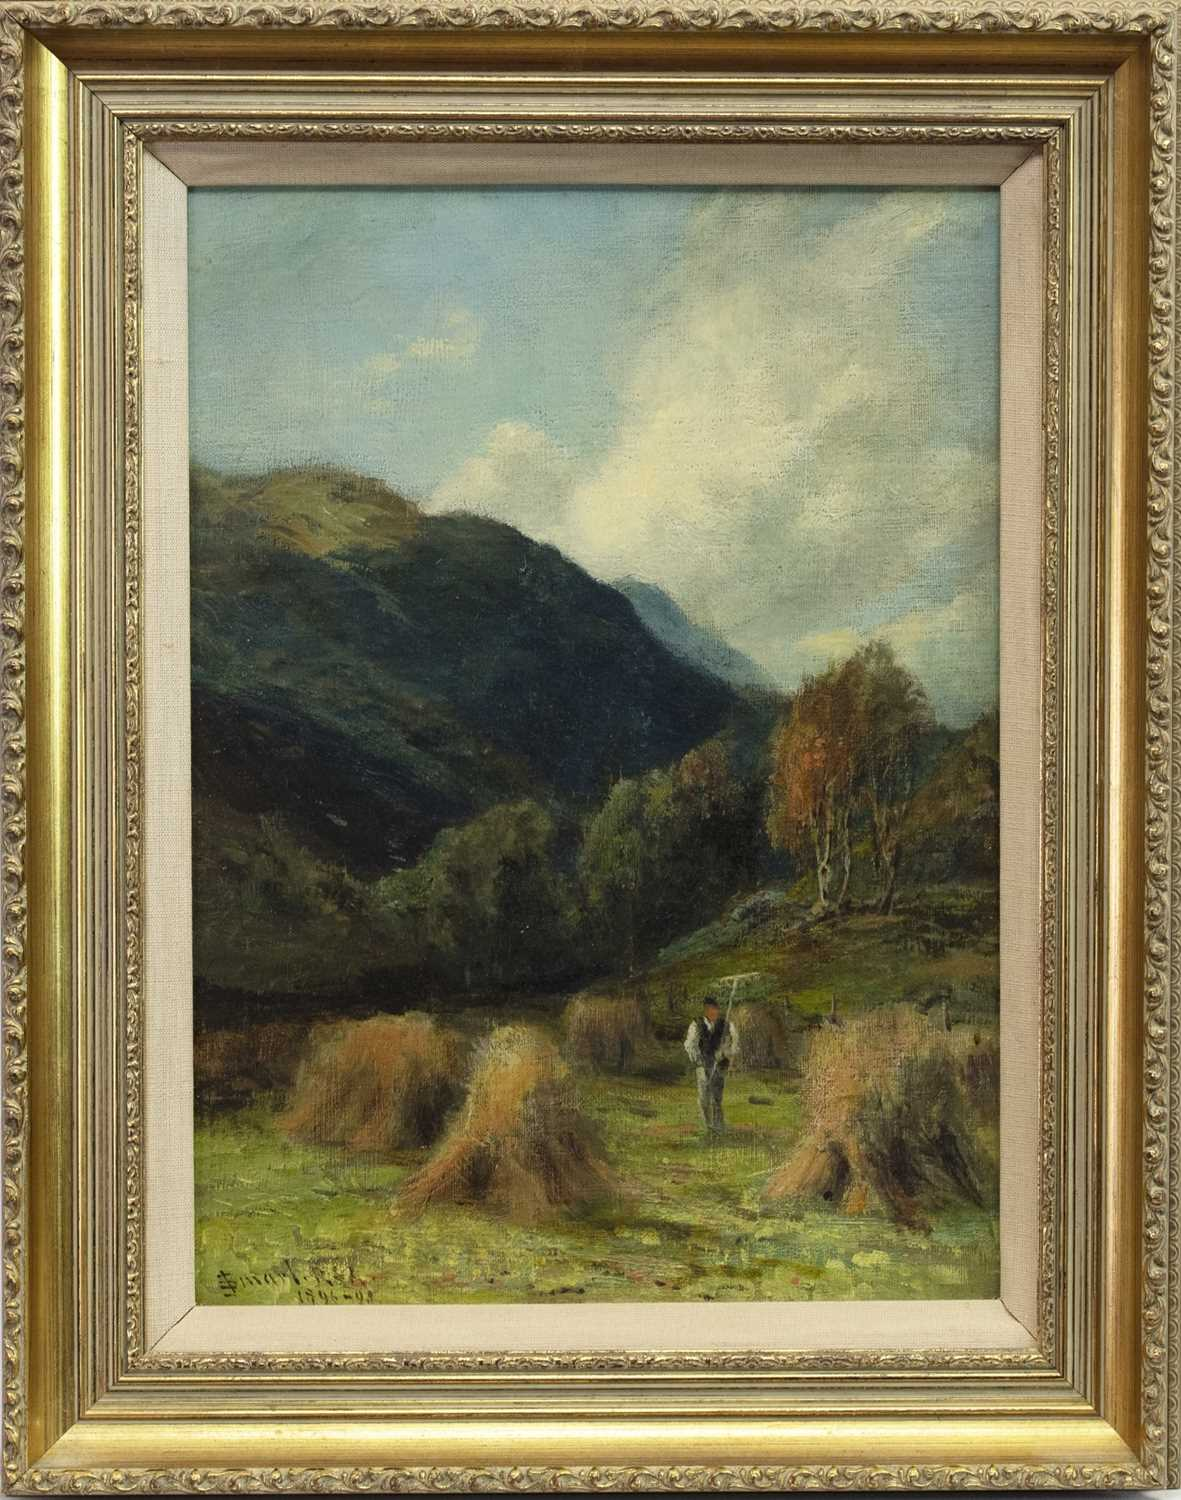 Lot 66 - DALCHULLY, STRATHCARN, AN OIL BY JOHN SMART